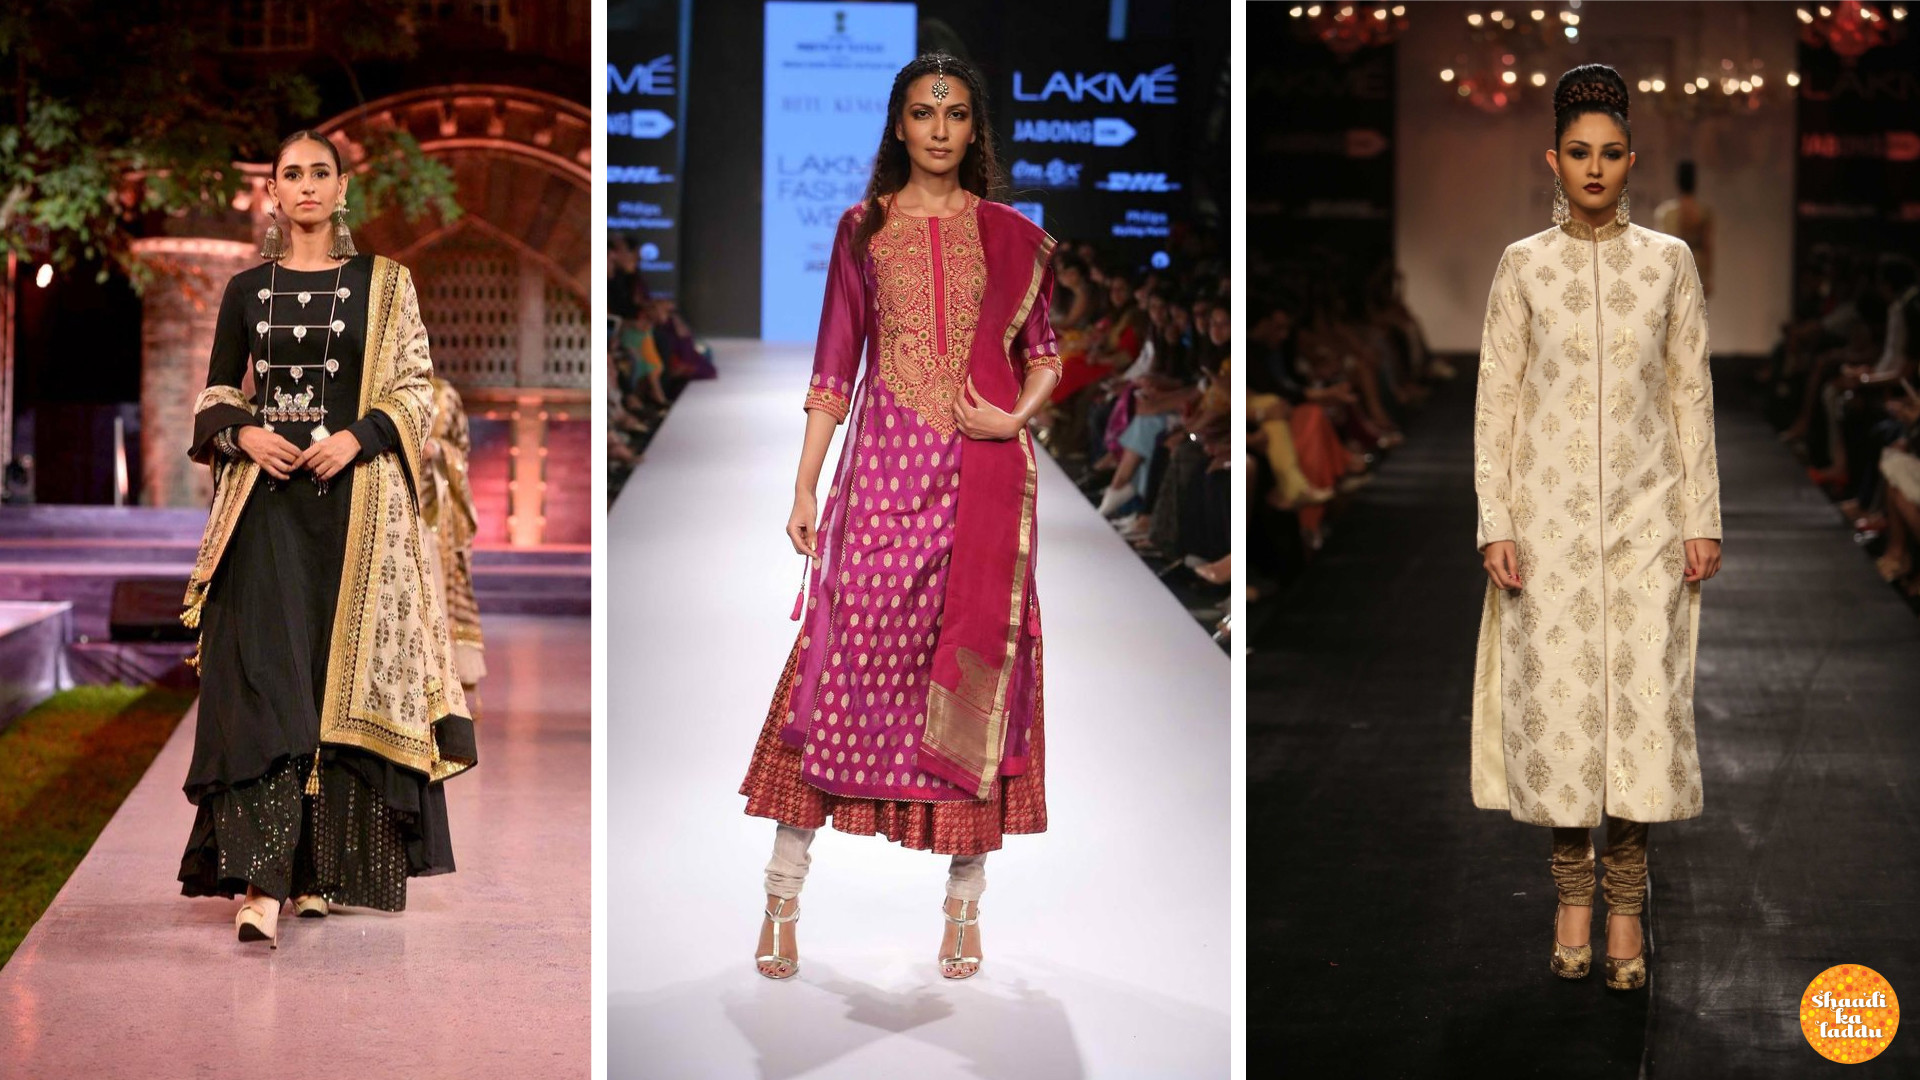 Kurtas with golden zari work or any other embroidery, works well for different wedding ceremonies